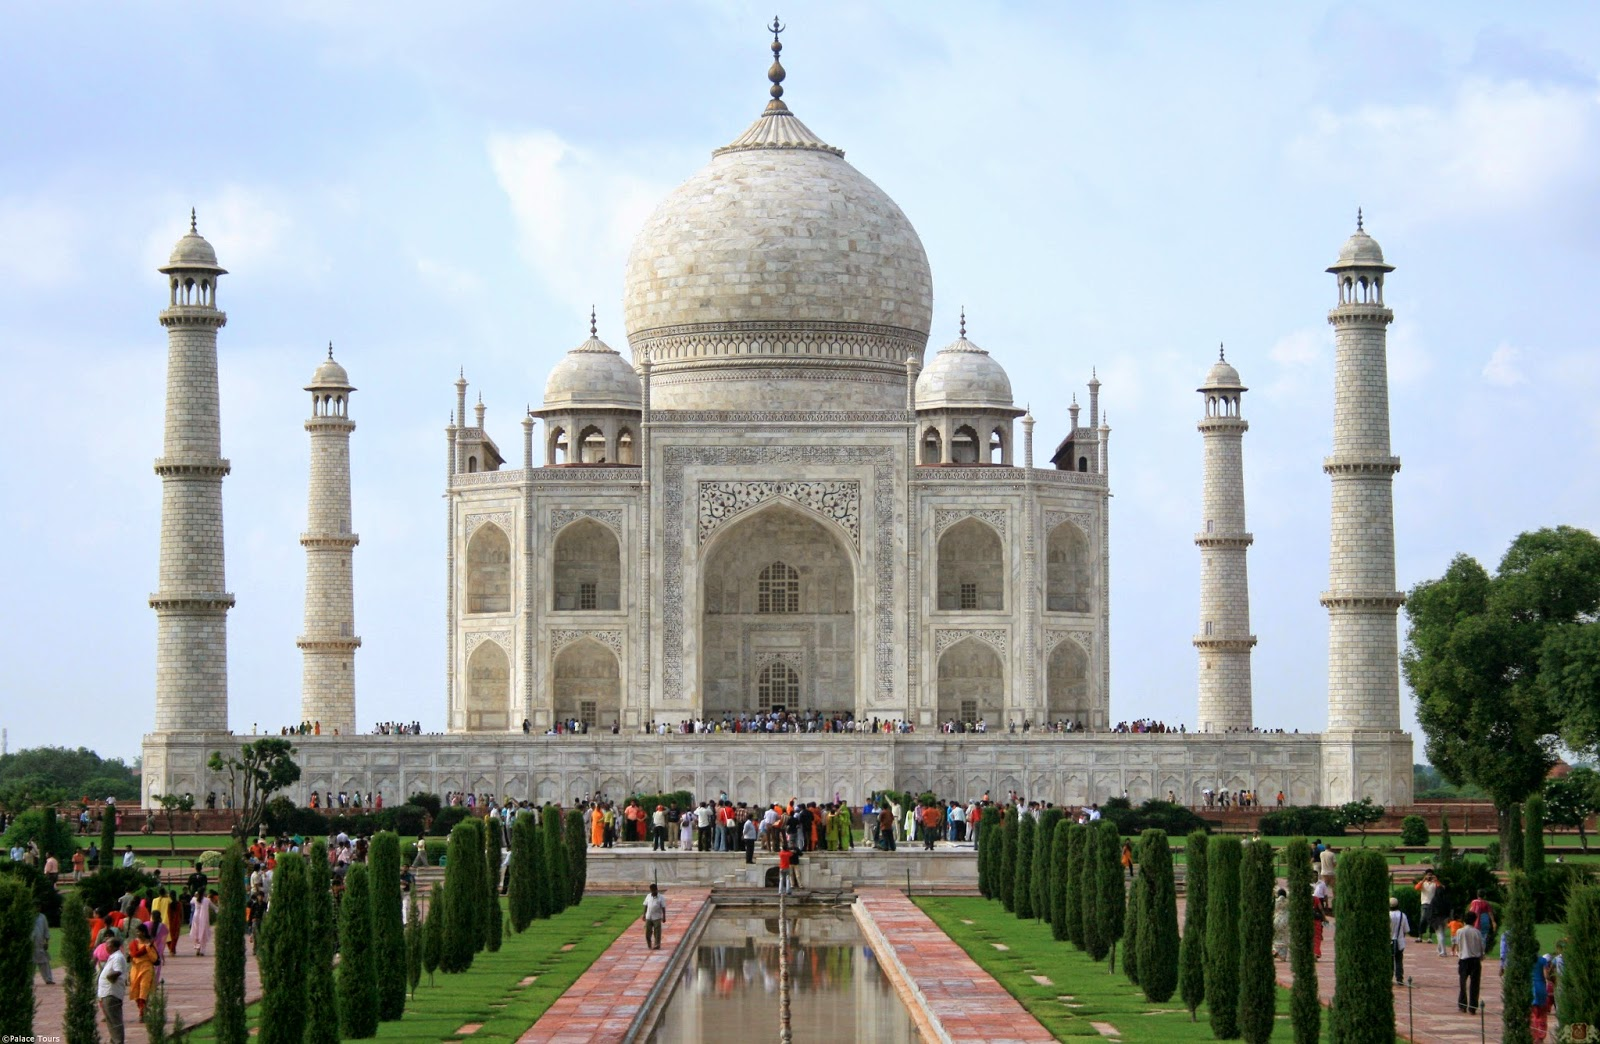 Top 10 most beautiful buildings in the world all time best for Most famous architecture in the world